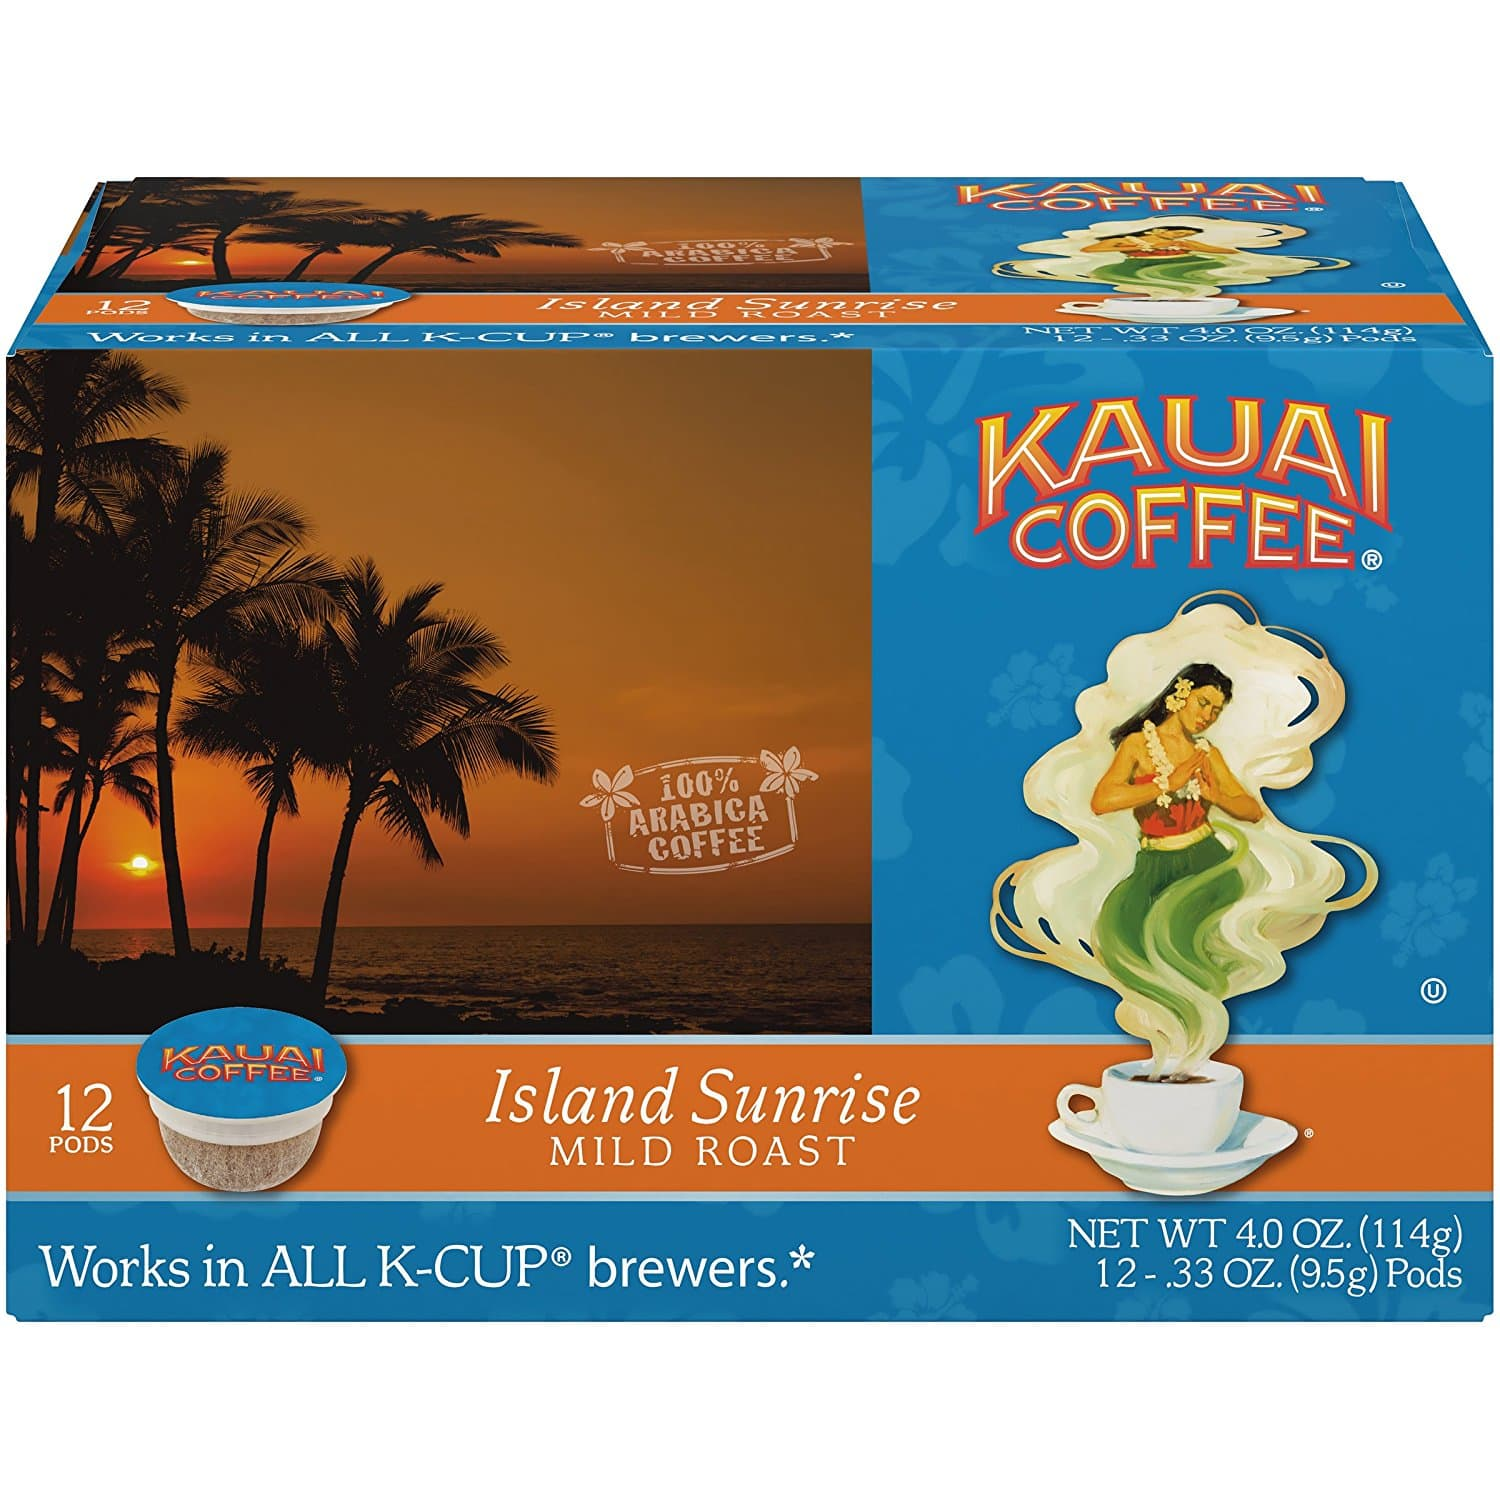 12-Count Kauai Coffee Island Sunrise Mild Roast Single Serve (K-Cup 2.0 Compatible) for $3.46 w/ S&S. Free Shipping